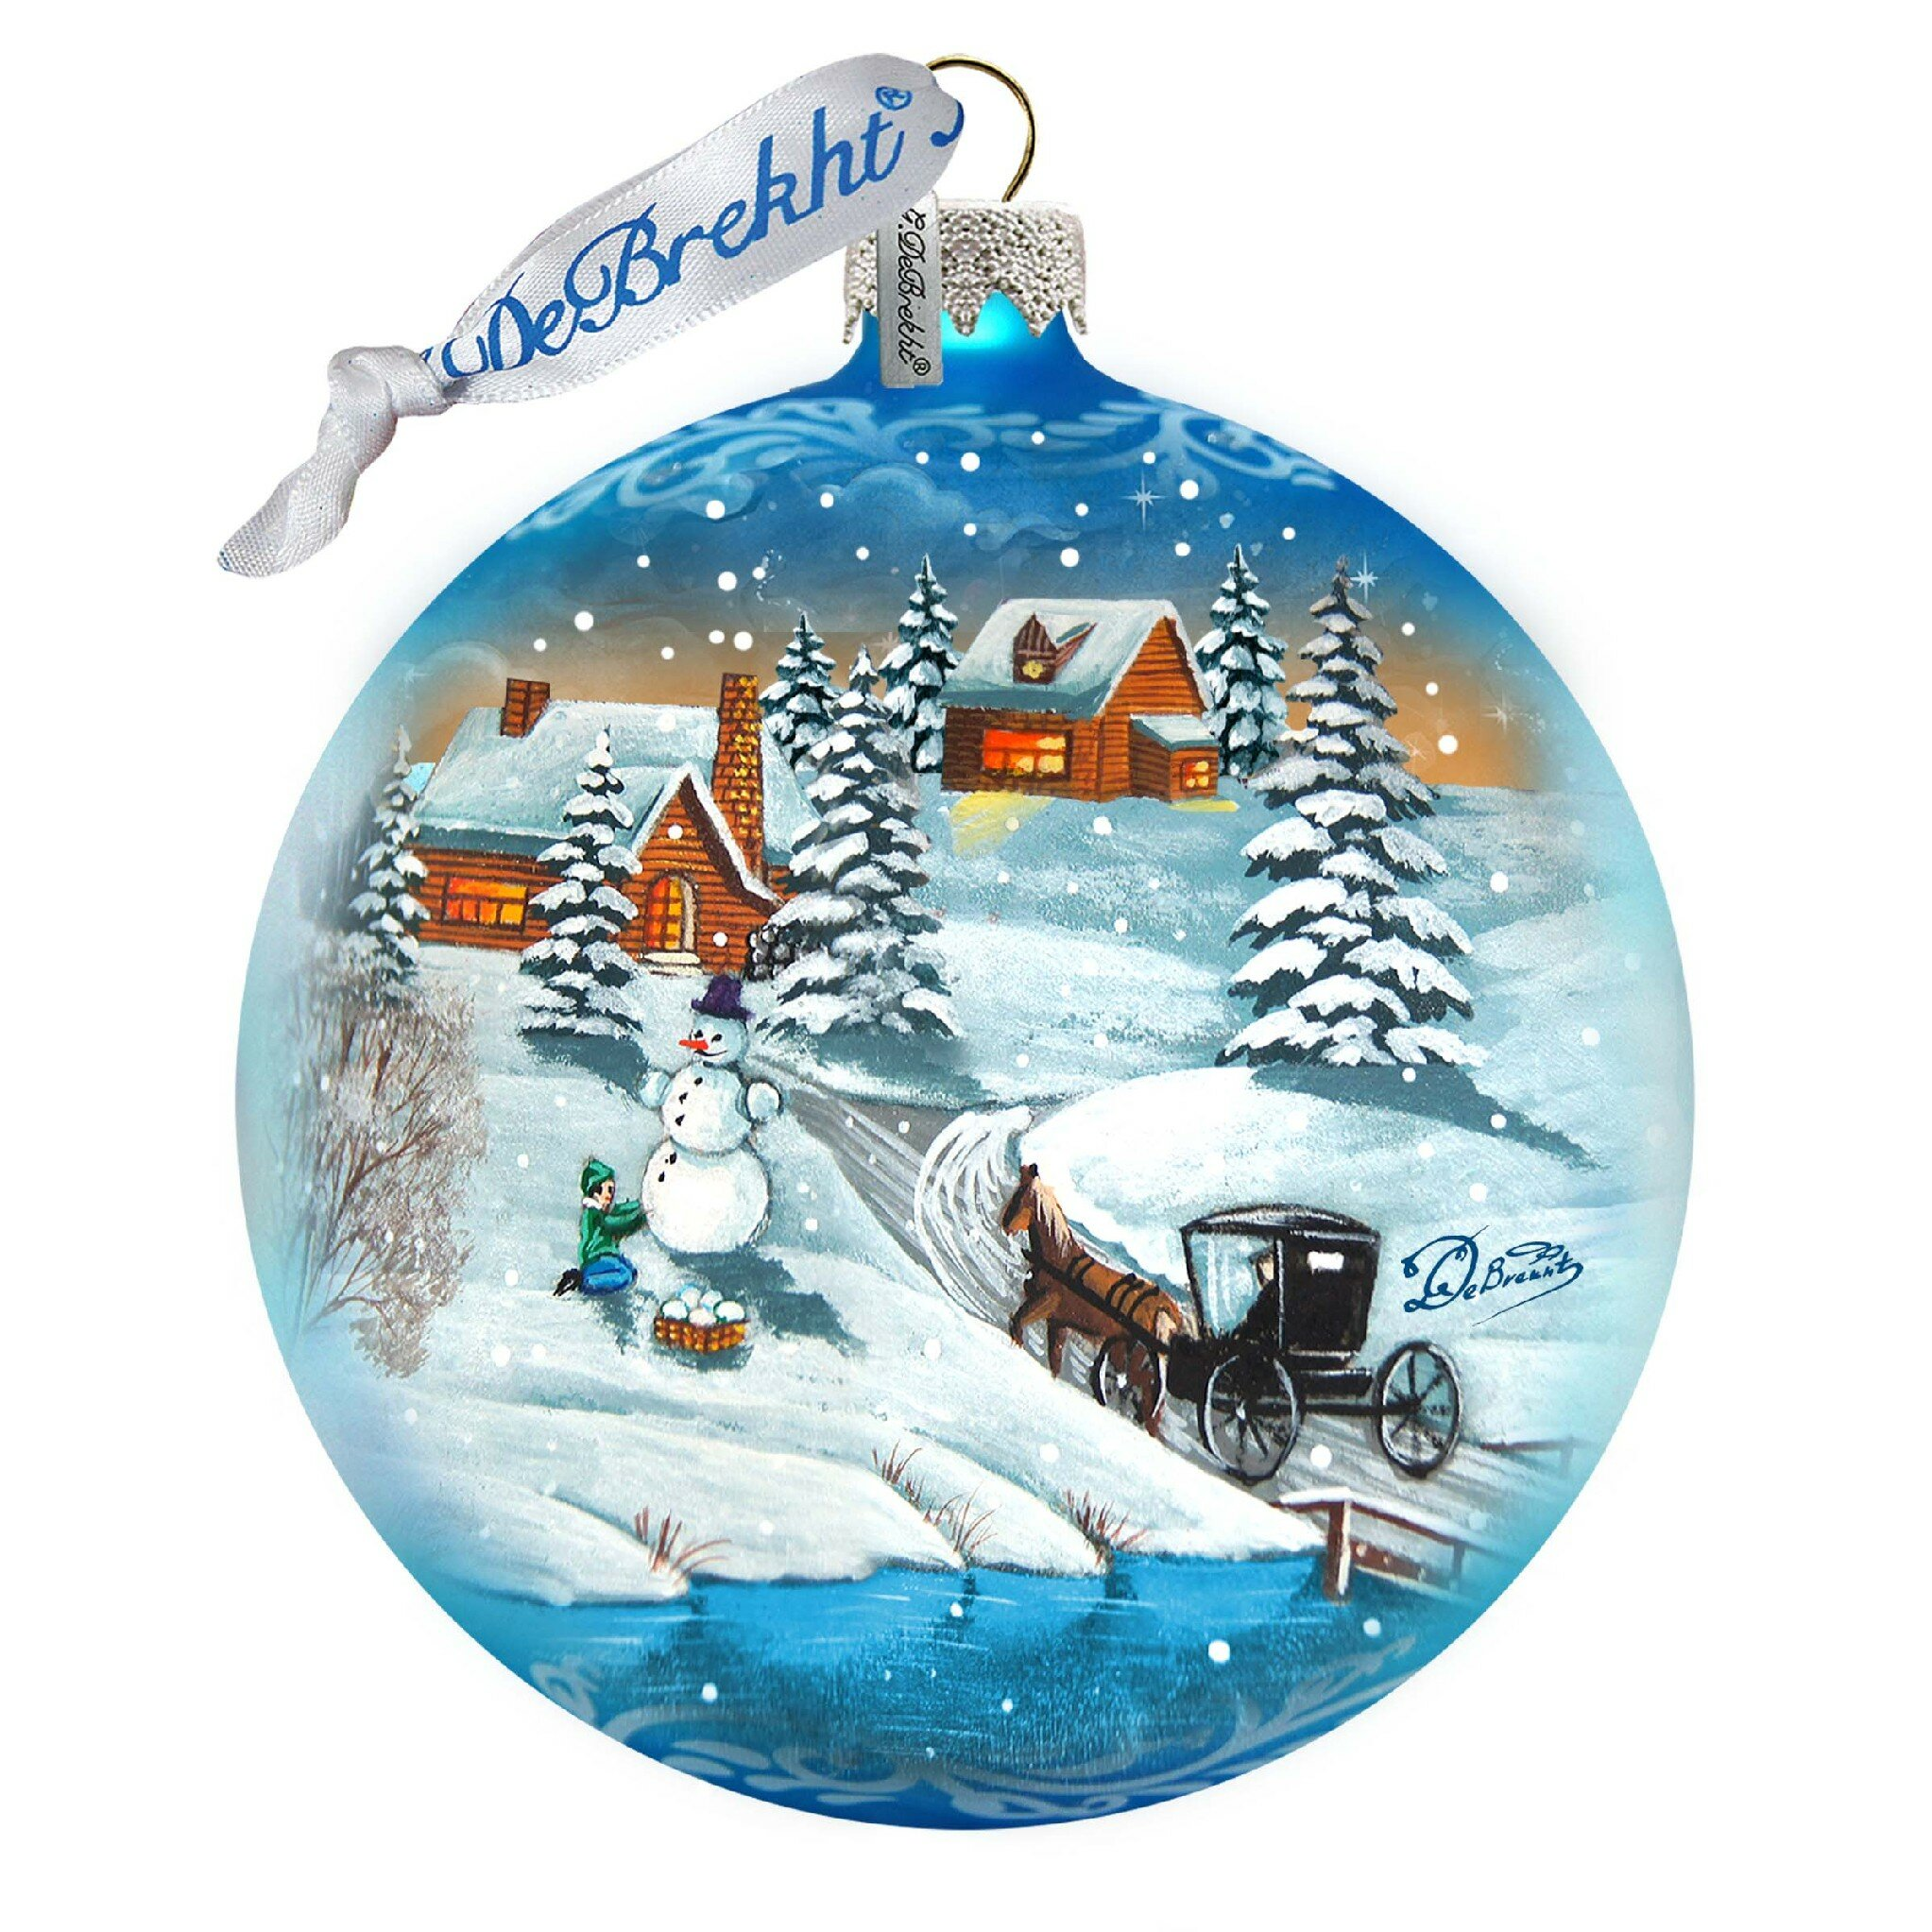 Designocracy Vintage Winter Village Ball Ornament Wayfair